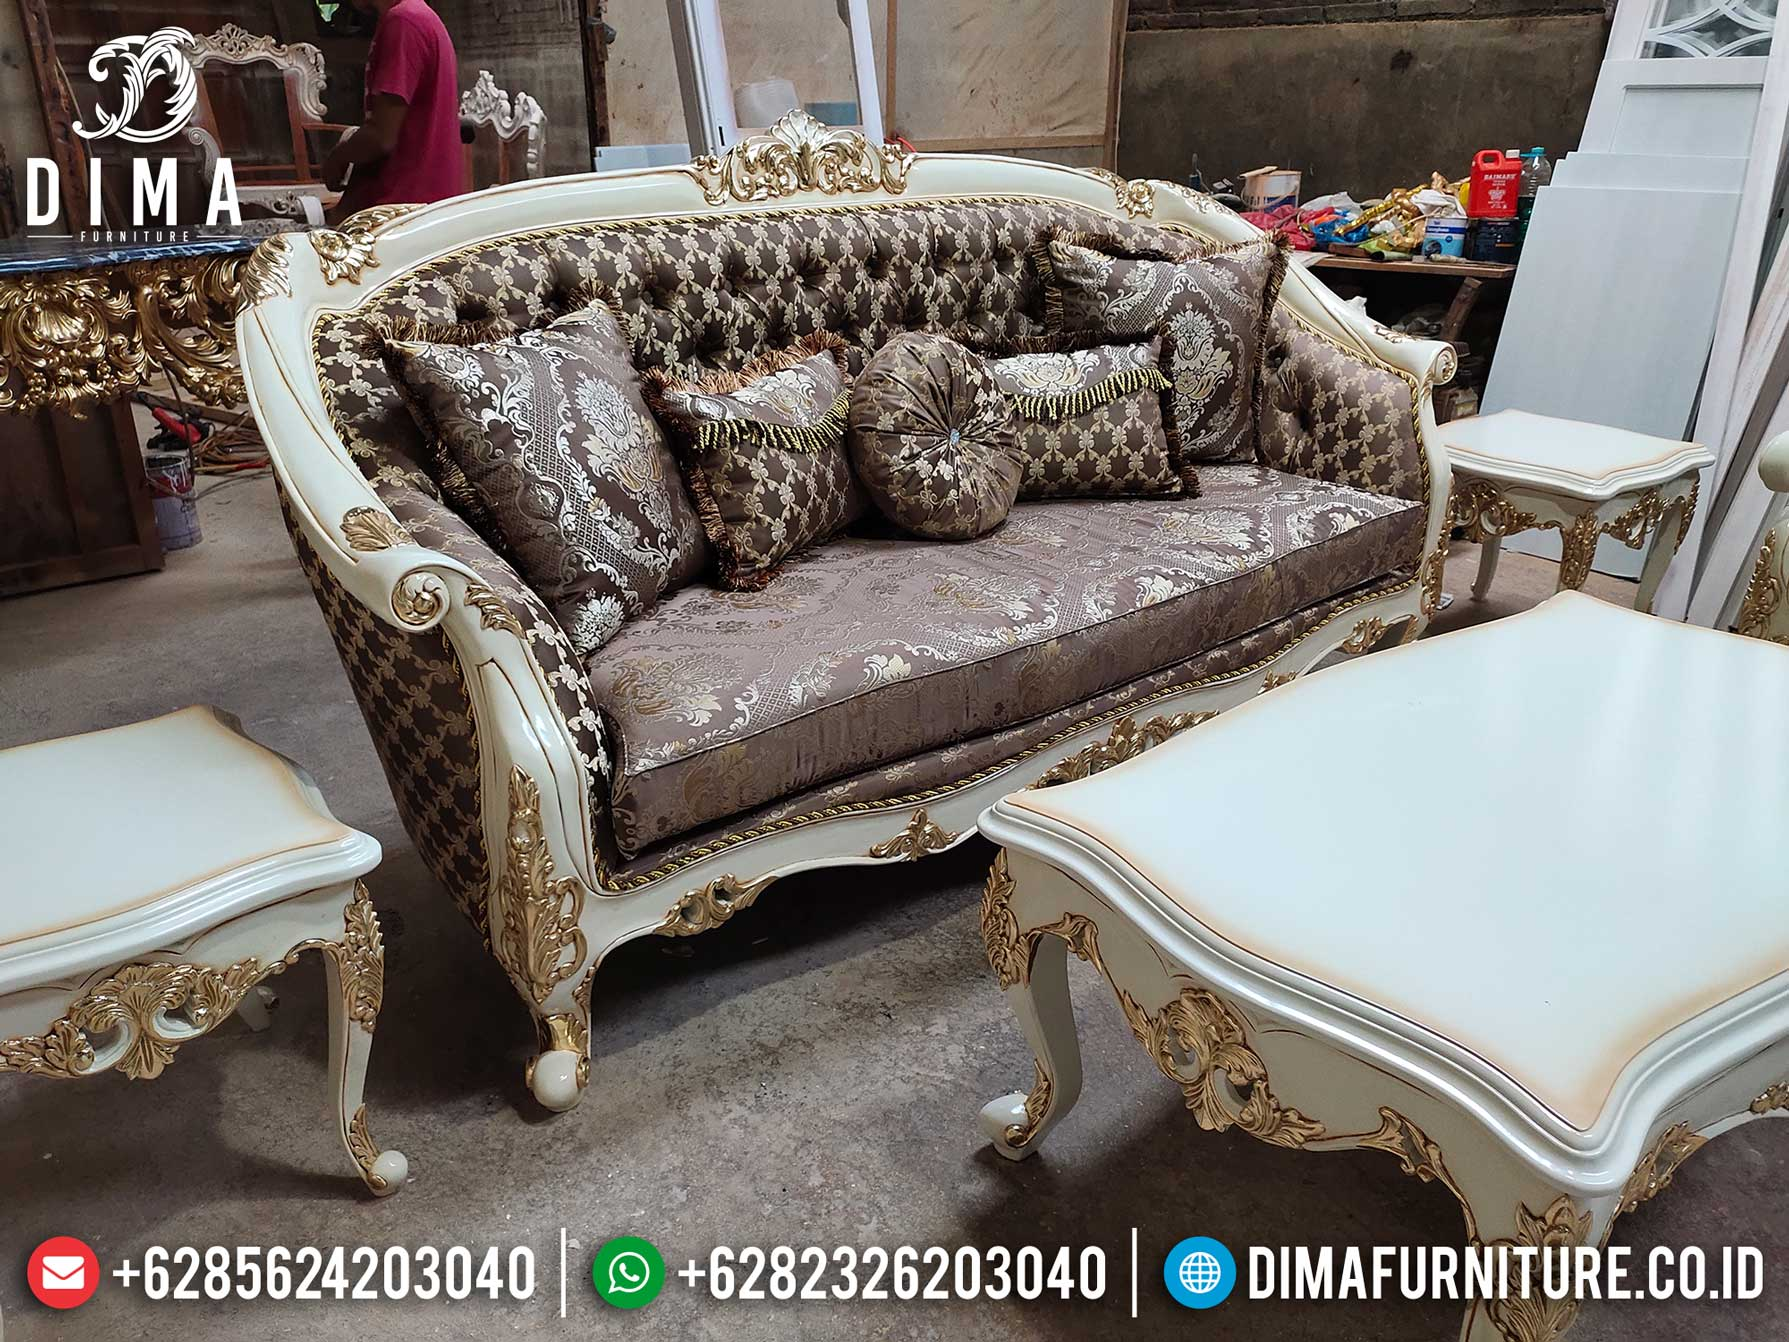 Flash Sale Sofa Mewah Ruang Tamu Luxury Classic Carving Great Quality Design TTJ-1275